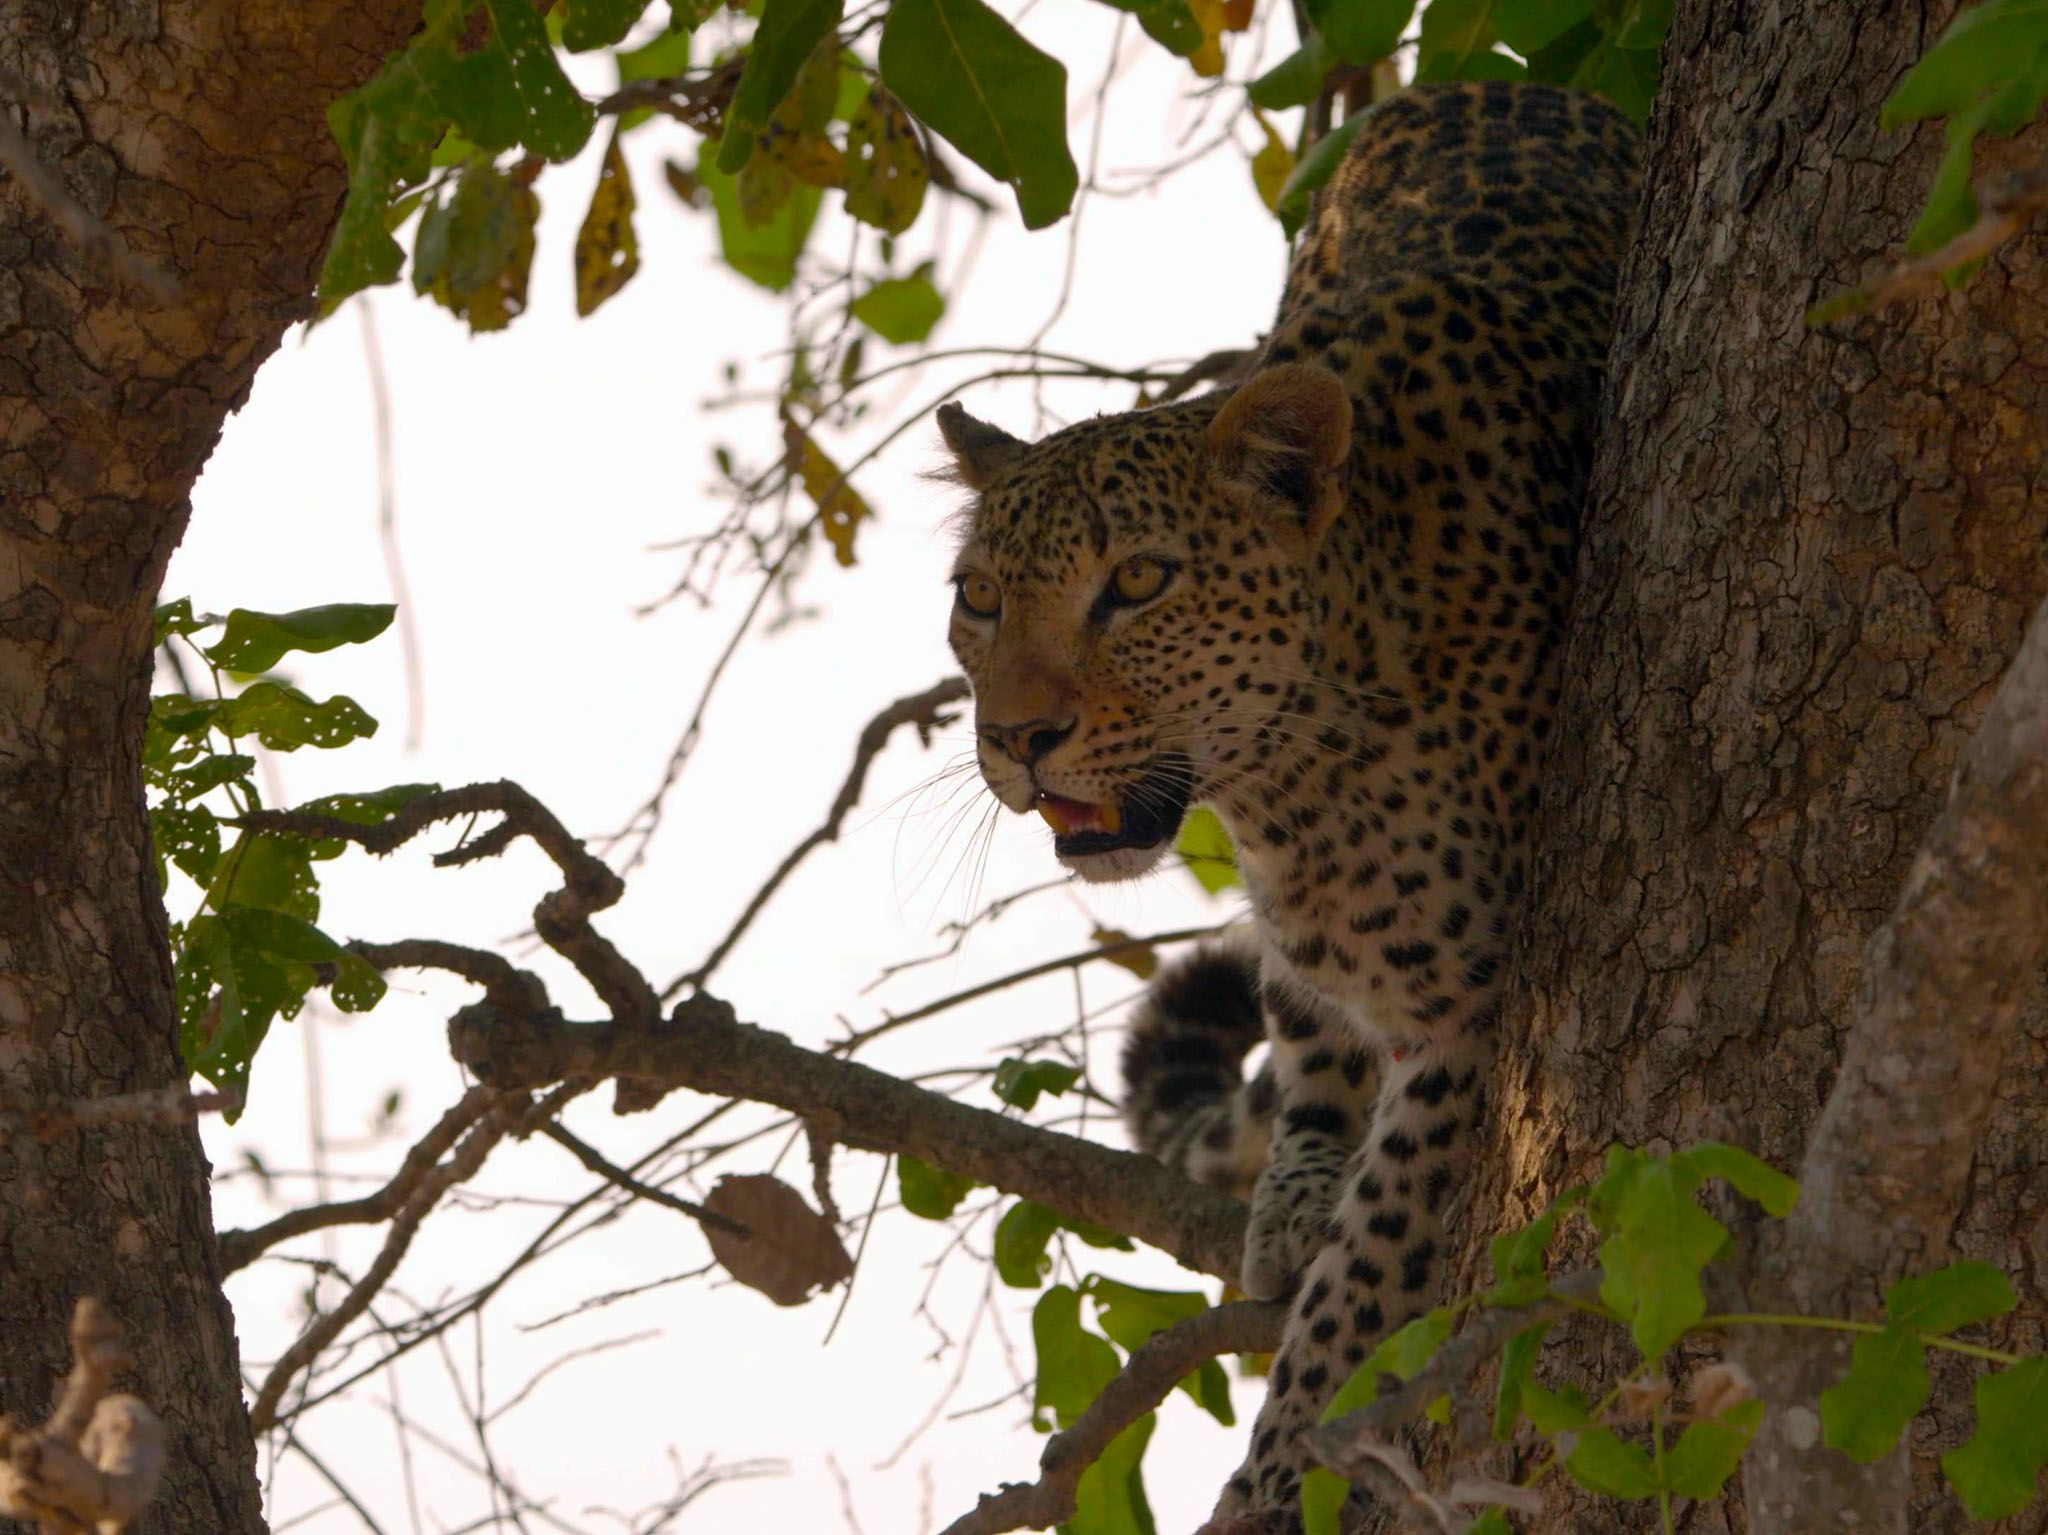 Male Leopard up on a branch. This image is from Africa's Hunters. [Photo of the day - مارس 2020]